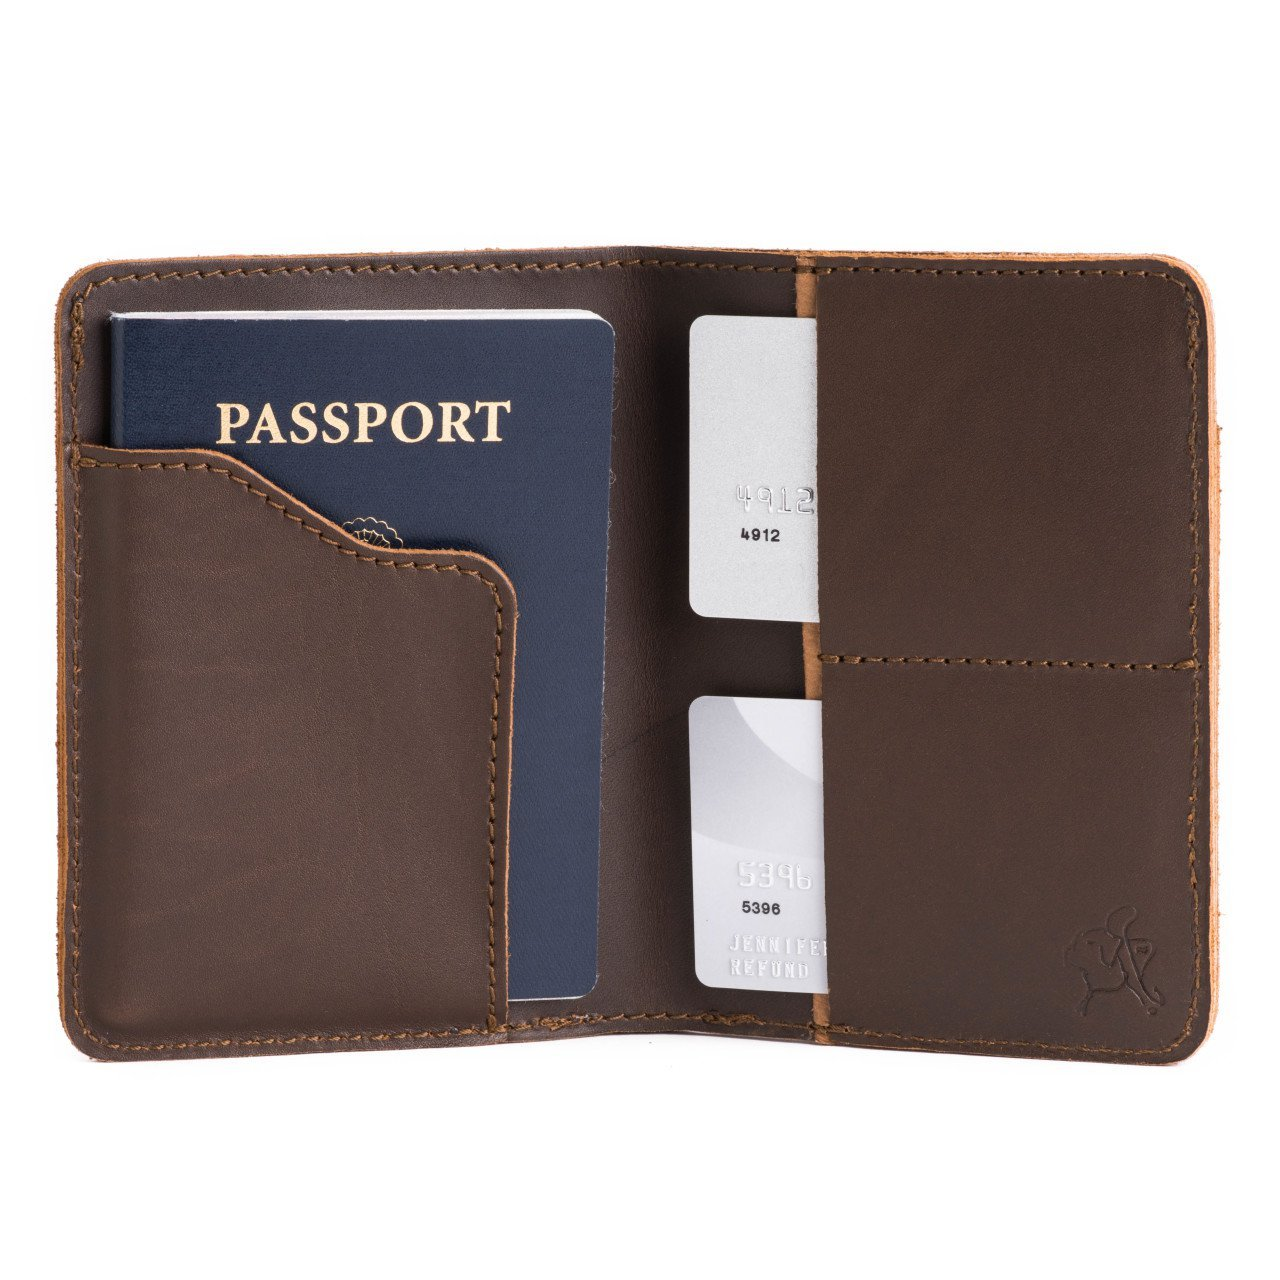 Saddleback Leather Co. RFID US Passport Holder Family Passport Wallet Includes 100 Year Warranty by Saddleback Leather Co.